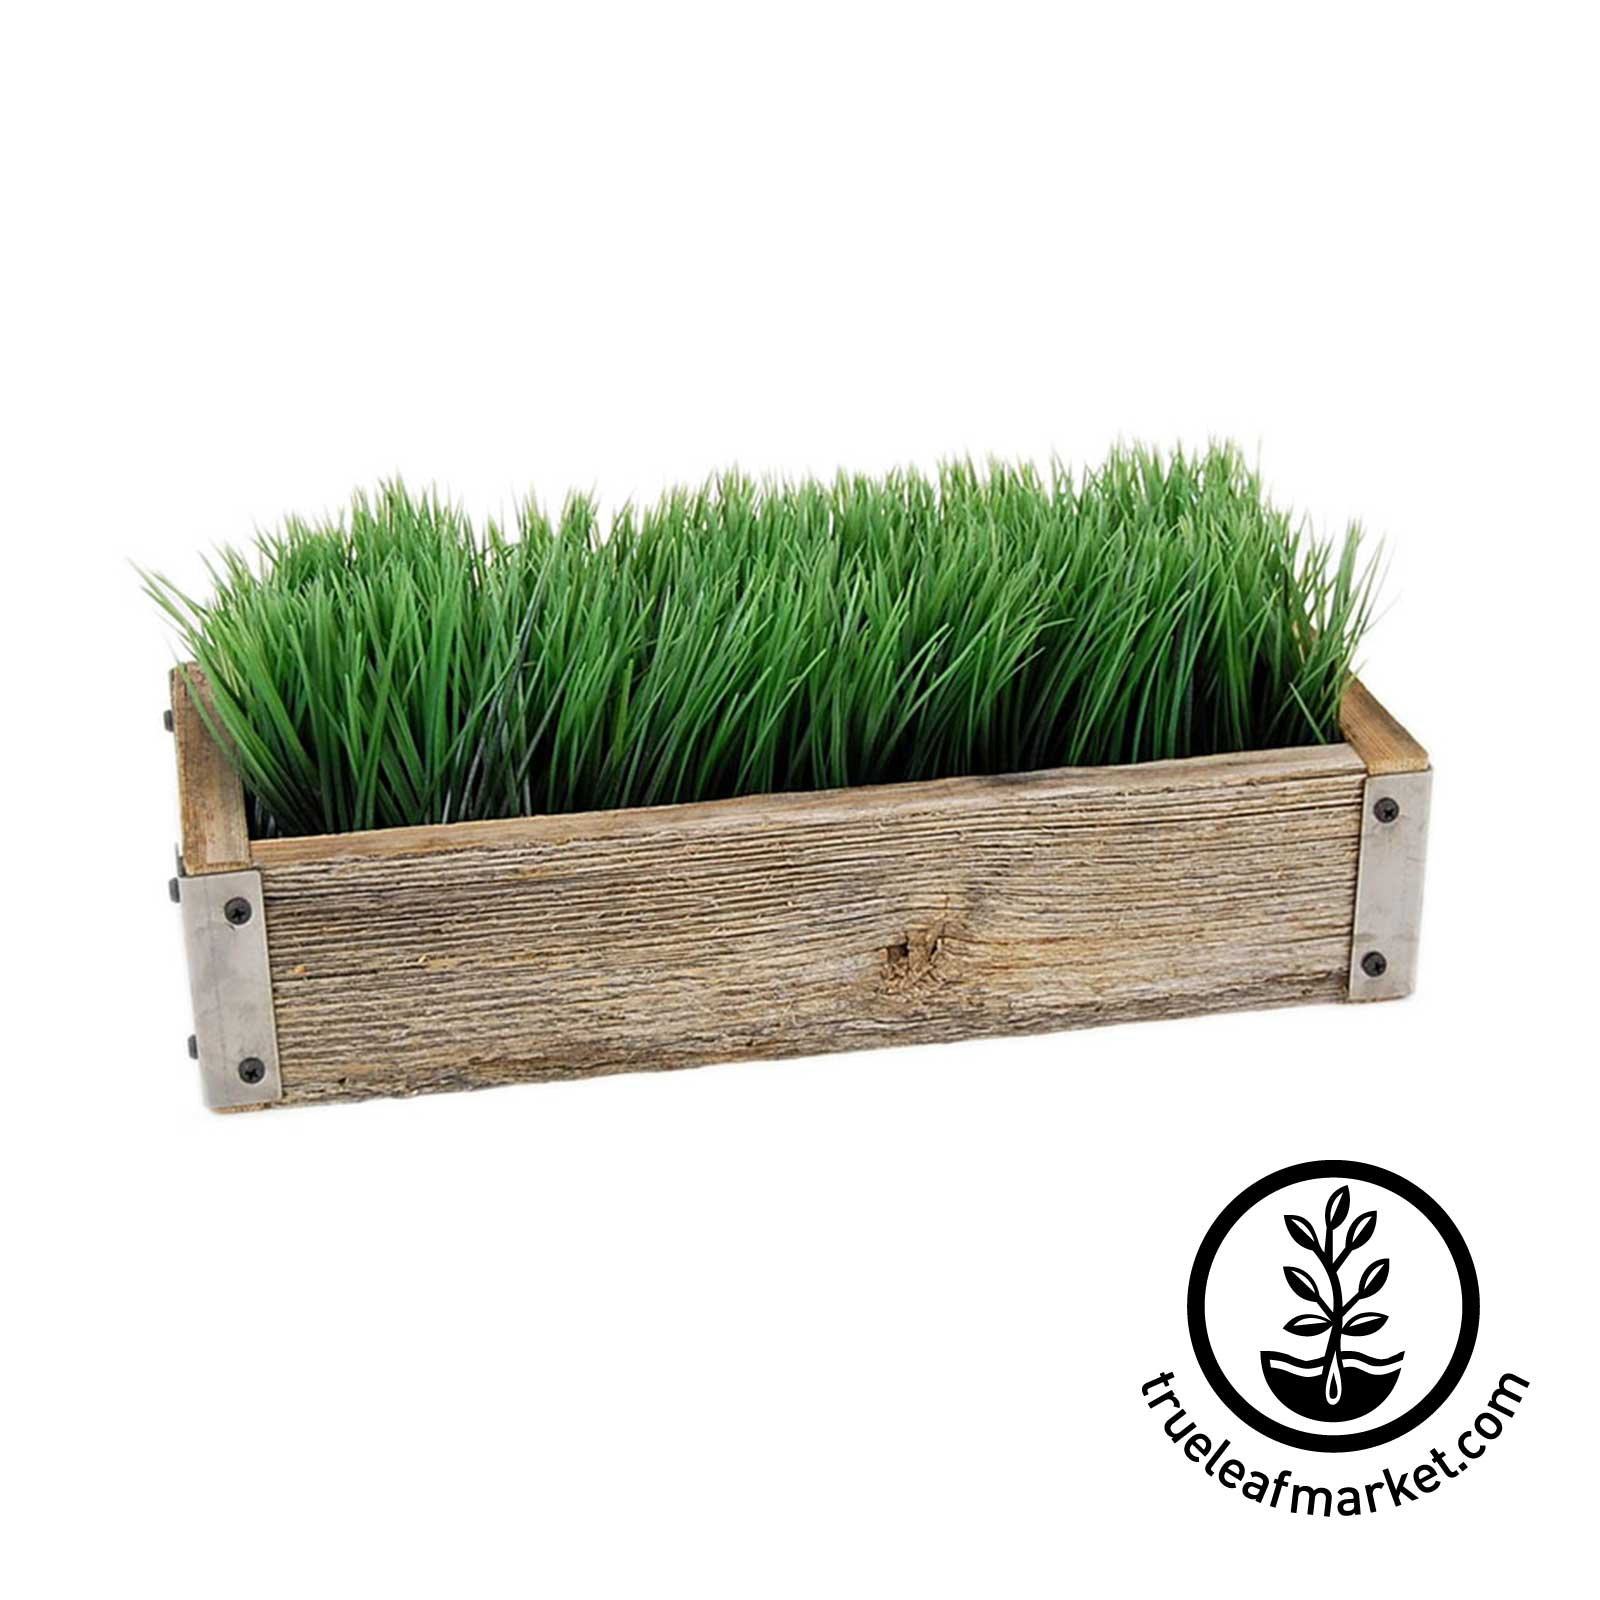 Barnwood Planter with Wheatgrass